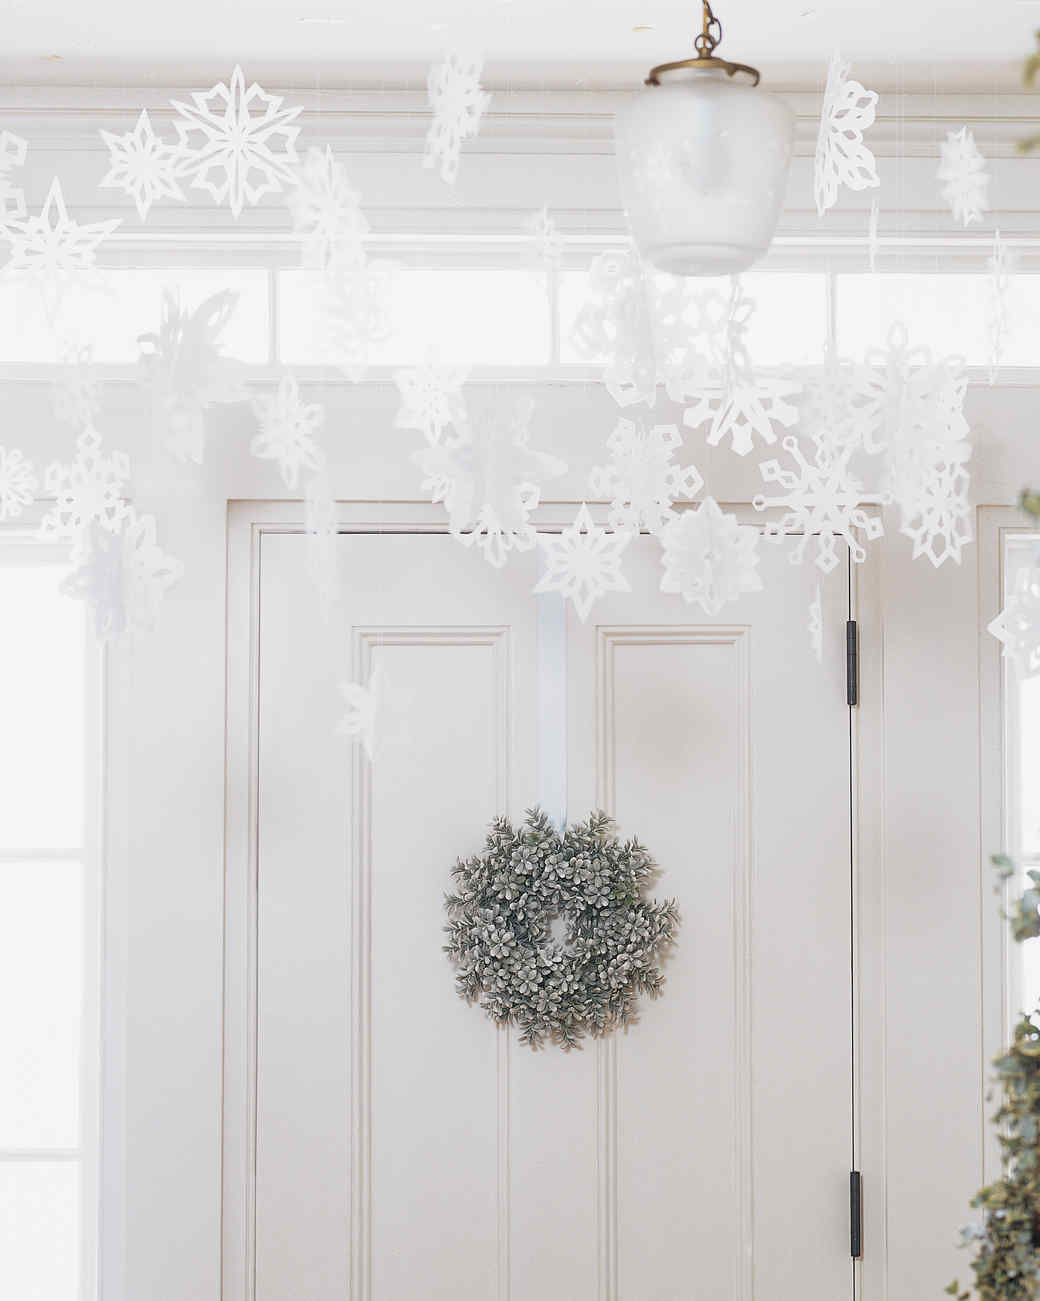 10 Ways to Have a White Christmas (Without the Snow) | Martha Stewart